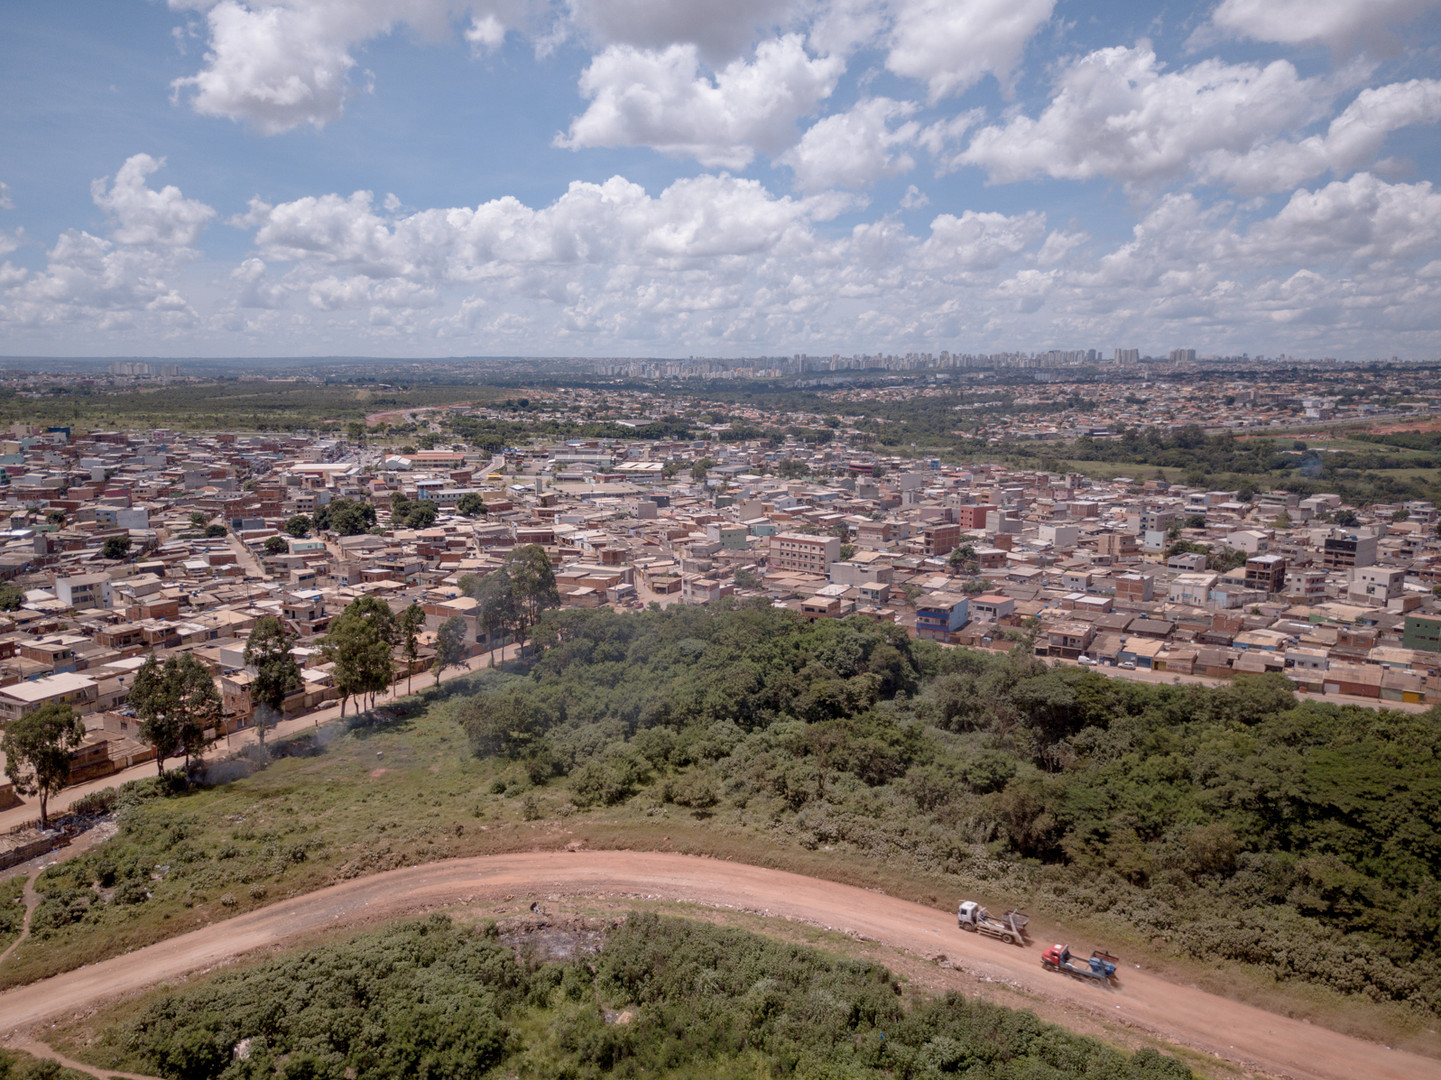 A road frequently used by the trucks of the dump and in the background, the Estrutural neighborhood, in Brasília, on Wednesday, 17 Jan, of 2018. Estrutural neighborhood is home to 35,000 residents.